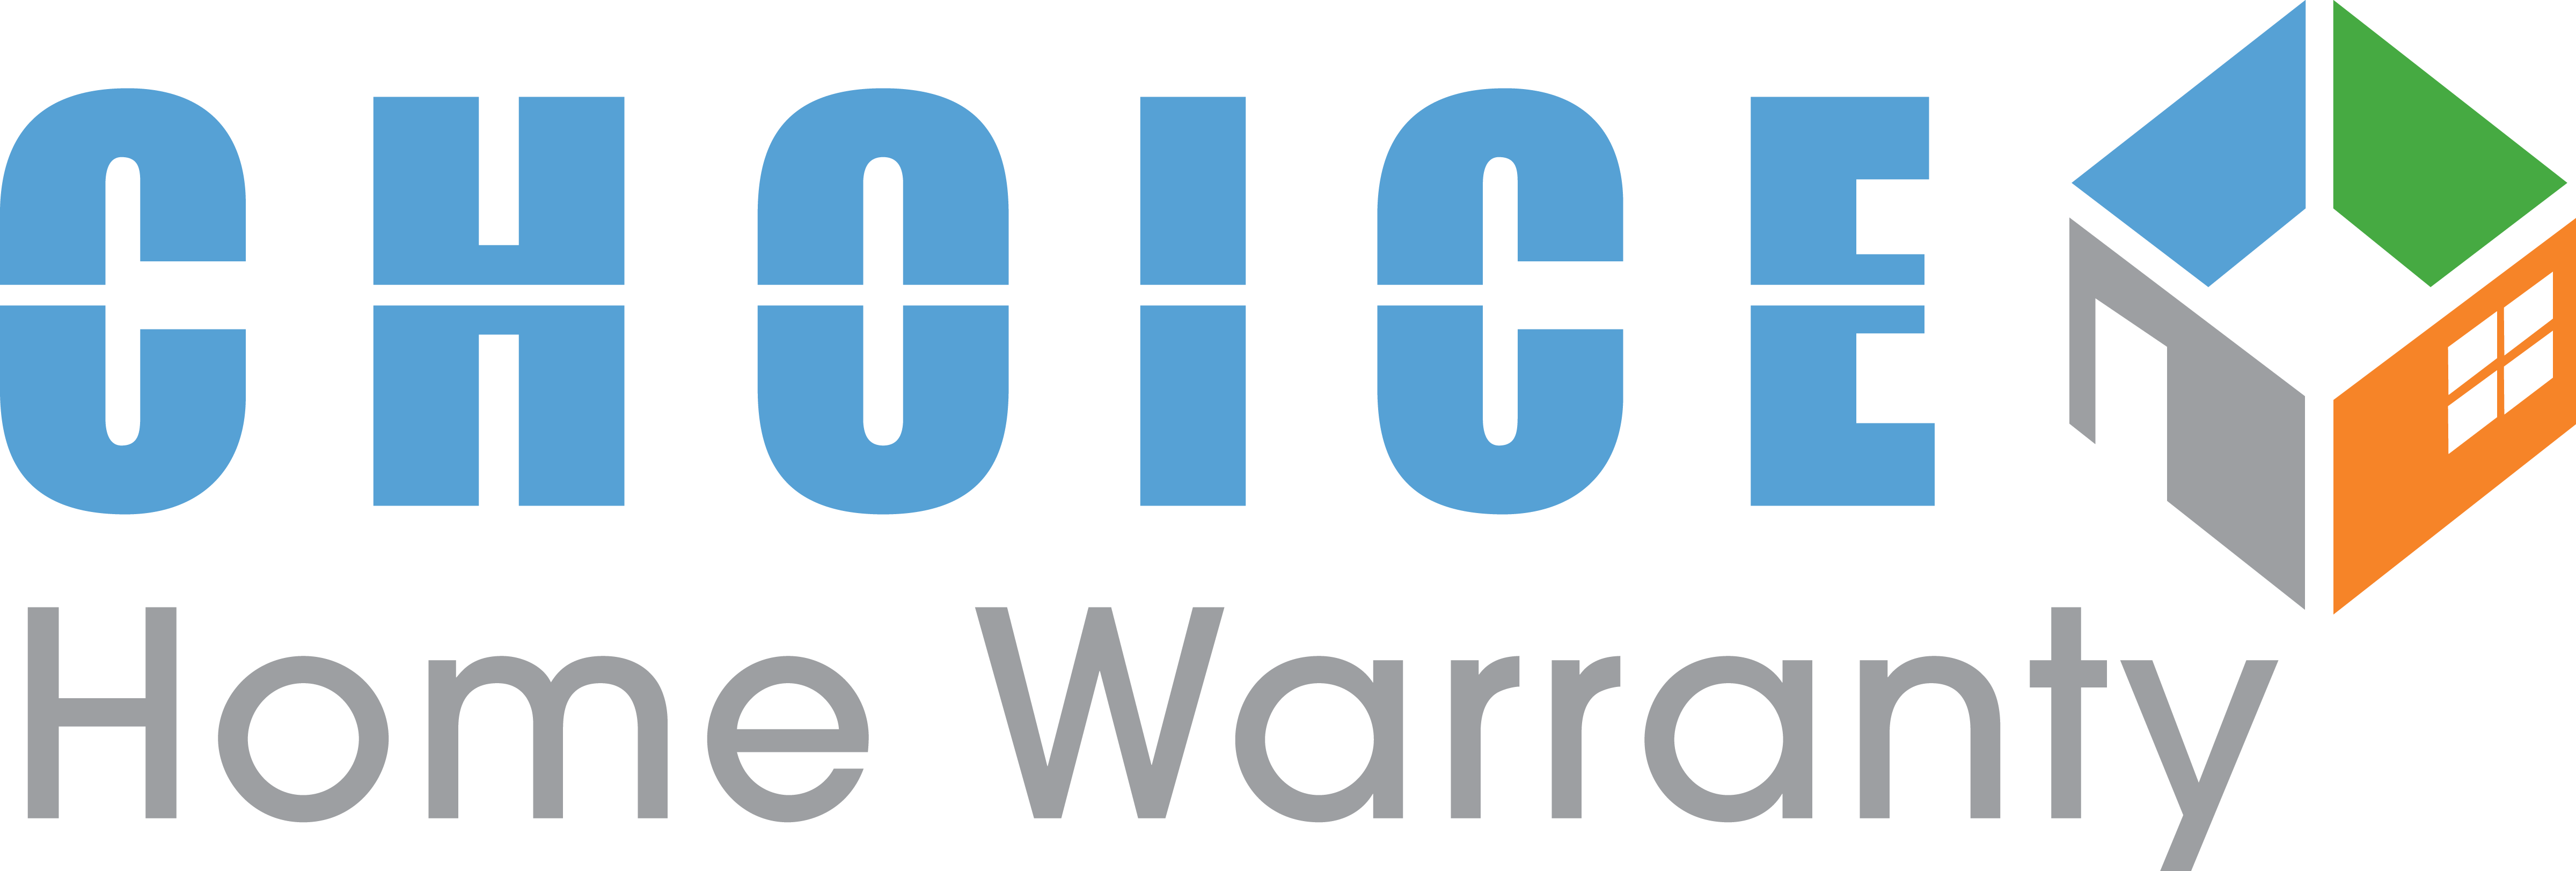 Choice Home Warranty Will Provide Enhanced Coverage During COVID-19 Crisis